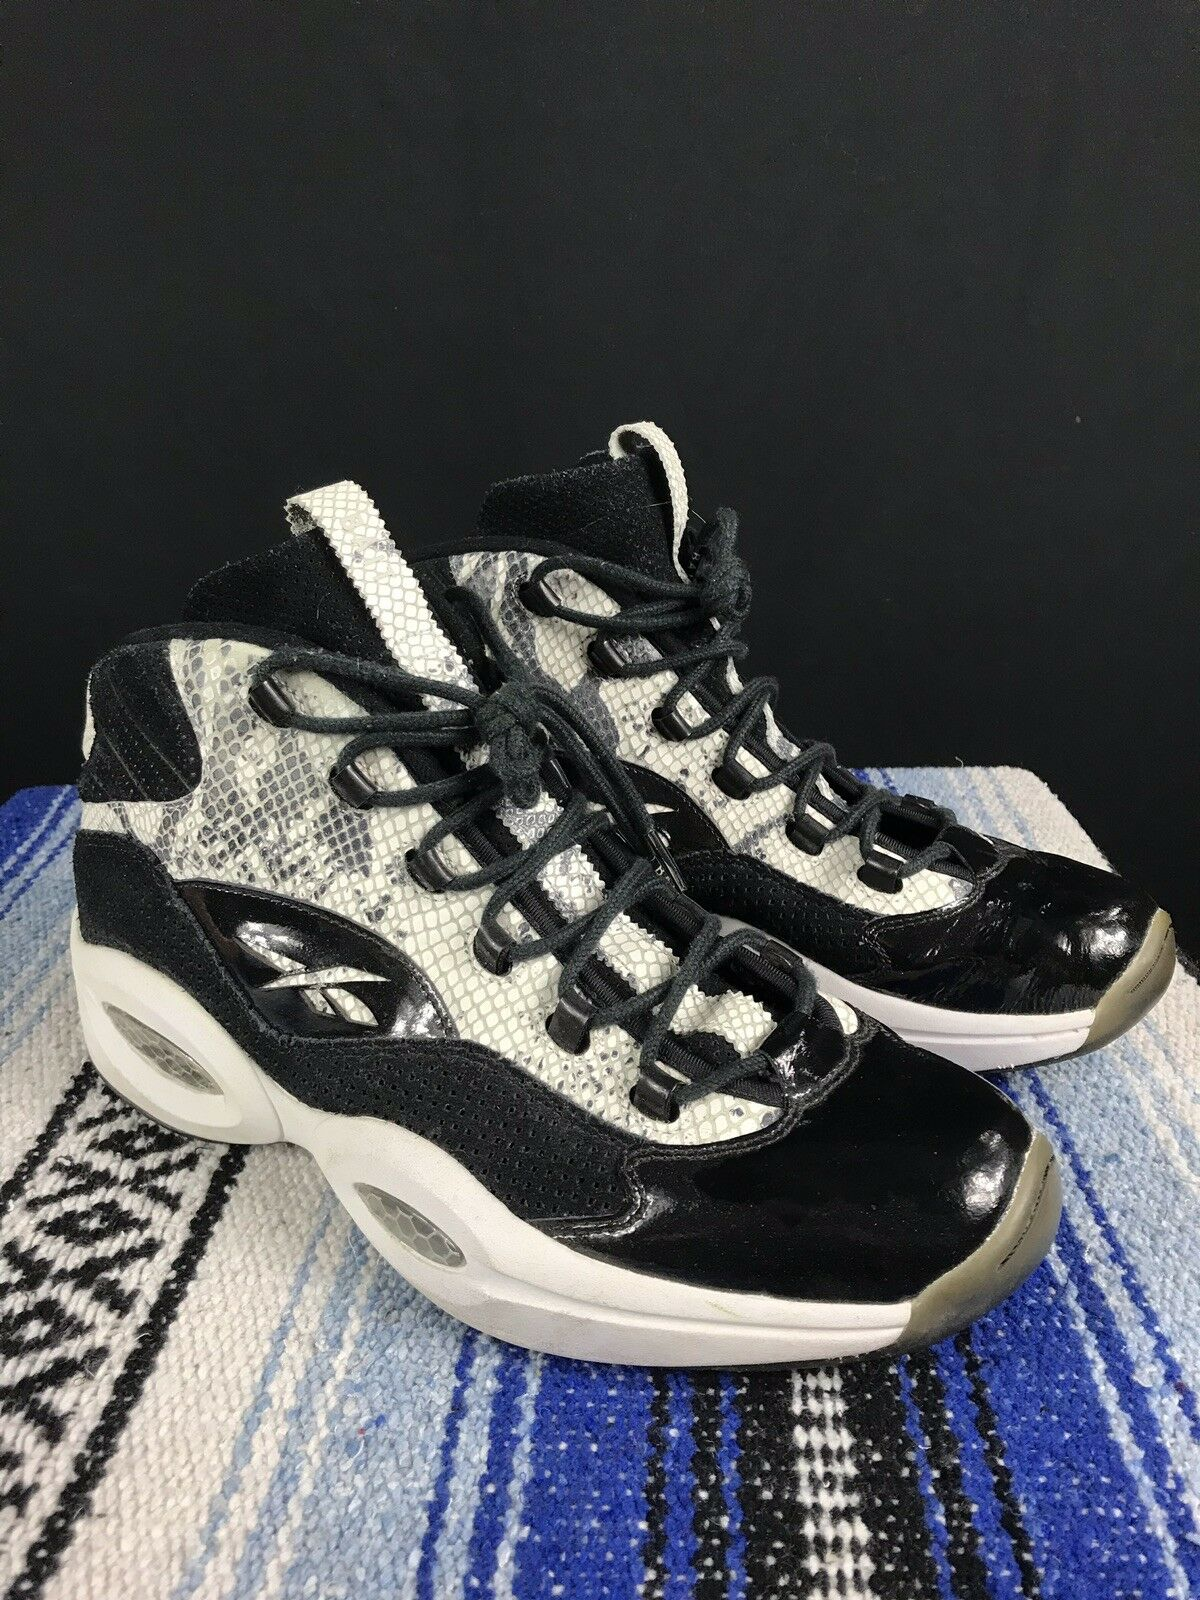 BAIT x Reebok Question Mid 2.0 2.0 2.0 Snake Skin Dimensione 13 Iverson snakeskin Samples 7f687a